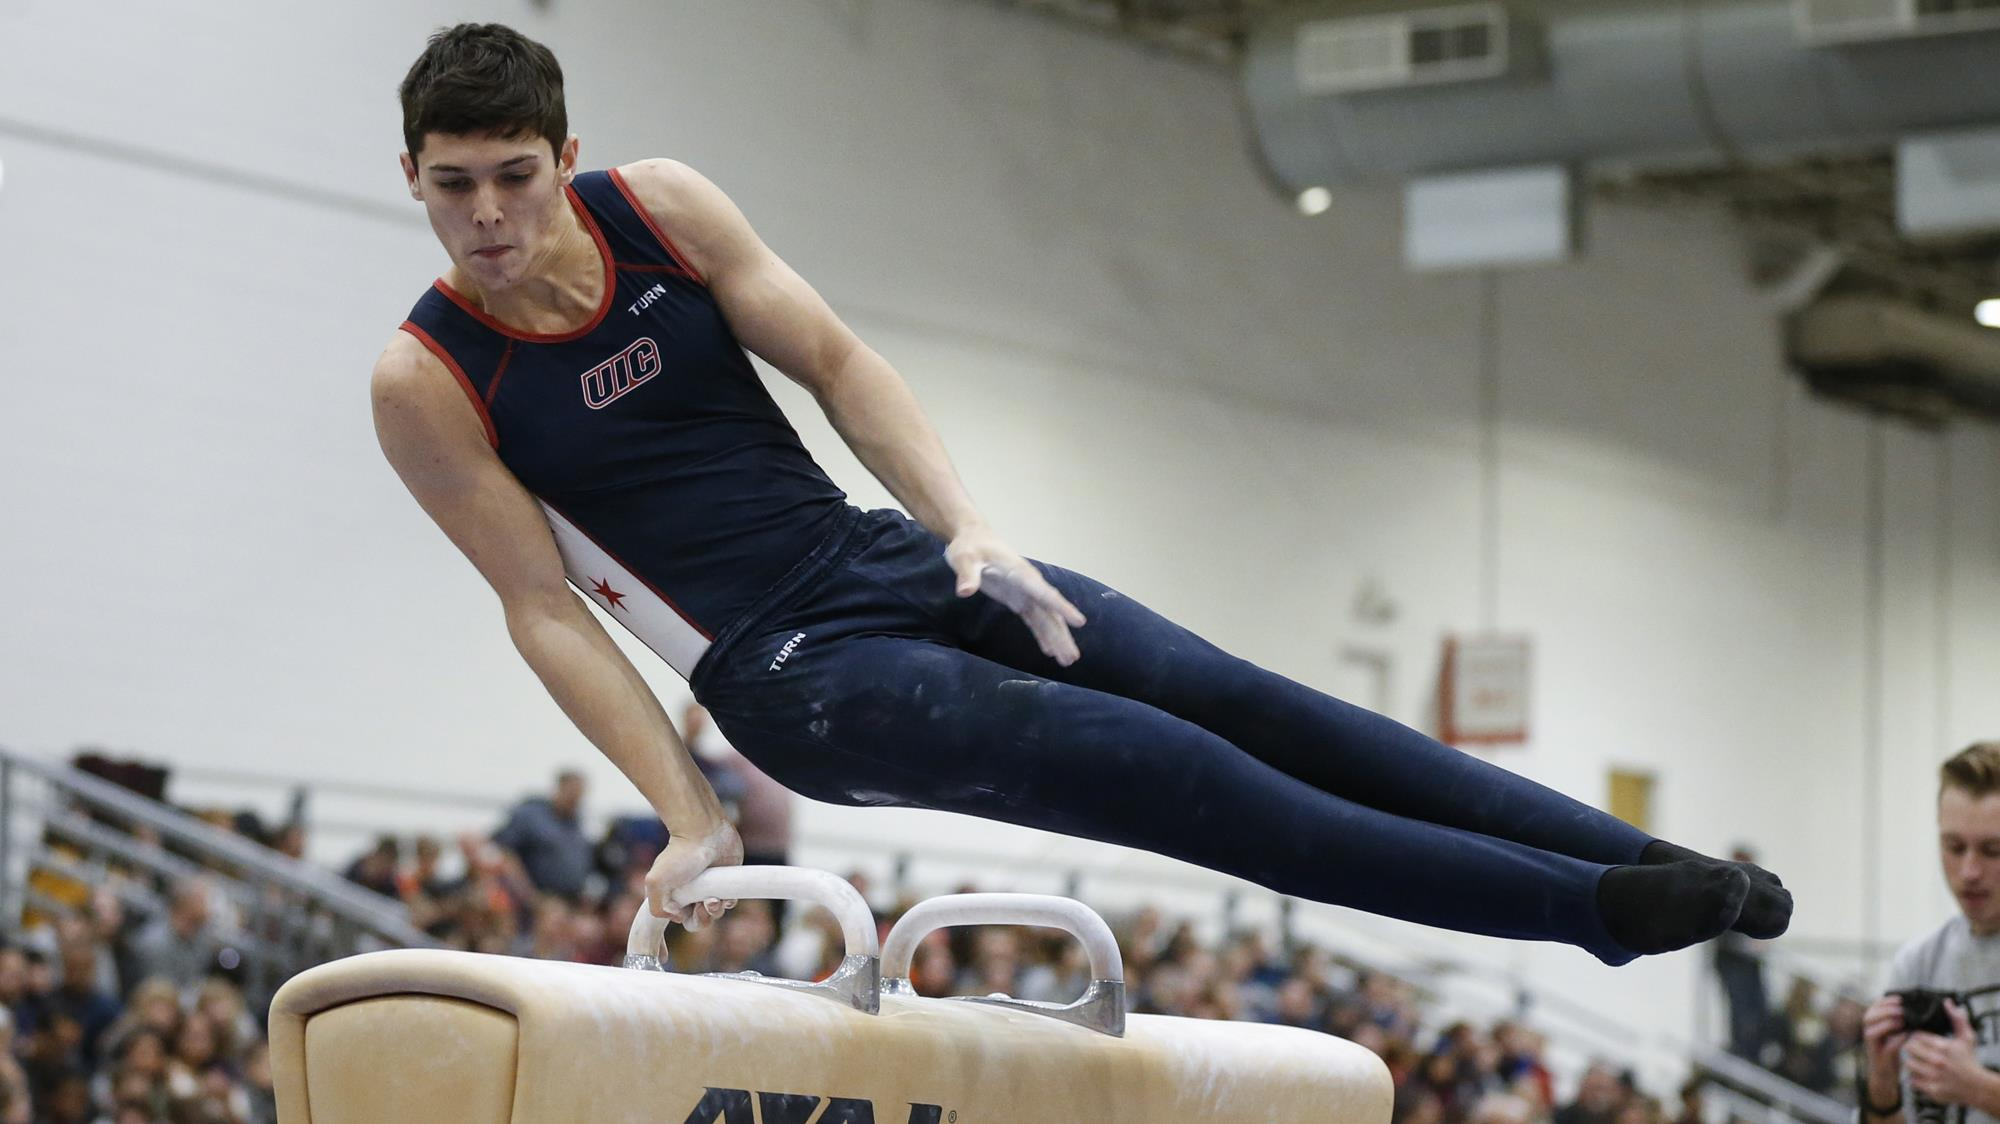 Image result for uic men's gymnastics 2019